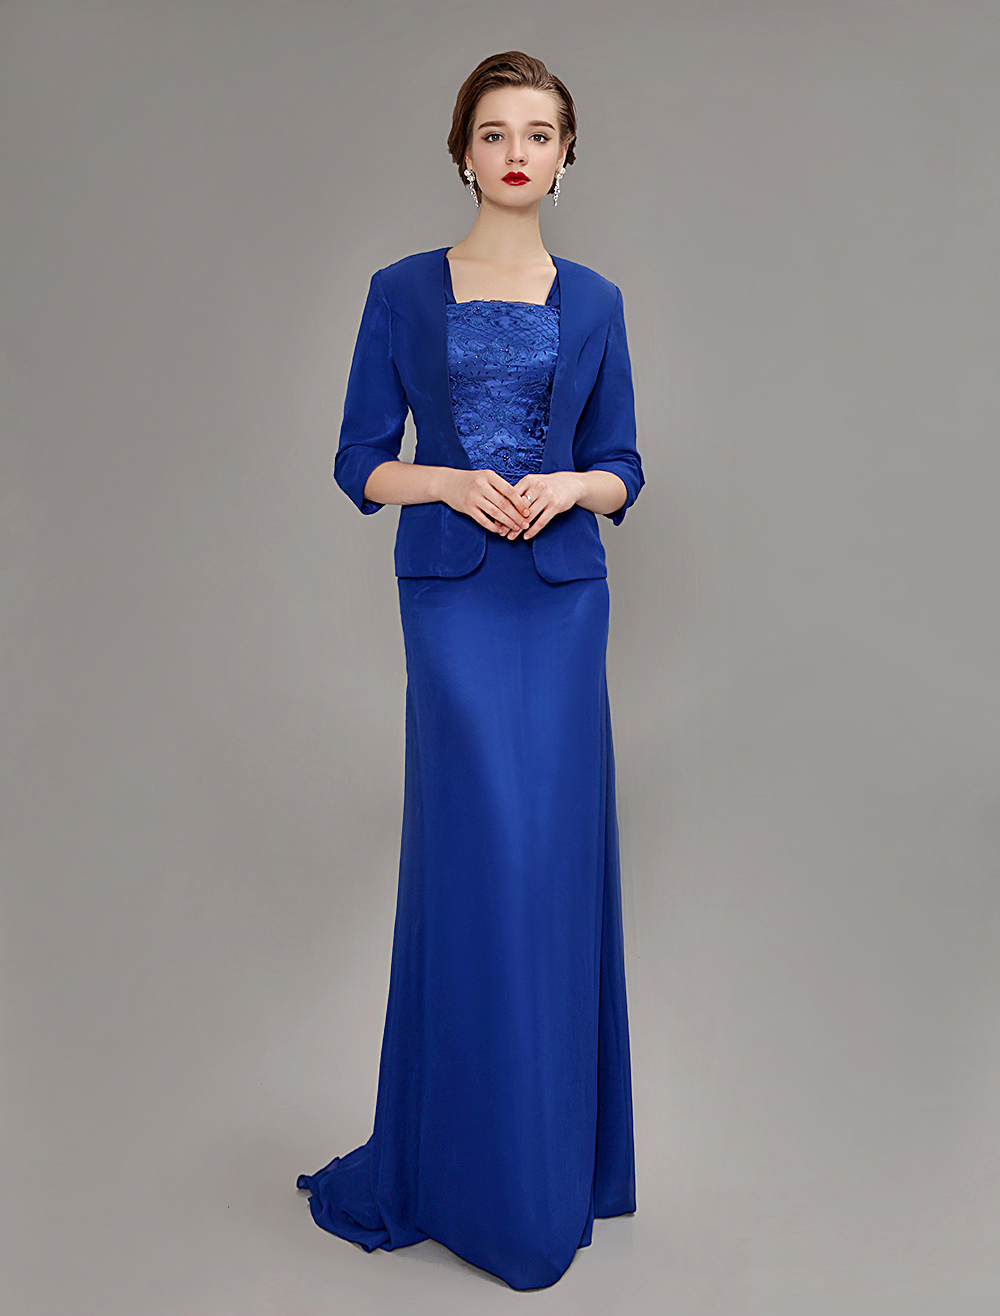 Royal Blue Chiffon Lace Mother Of Bride Dress With Train and Jacket